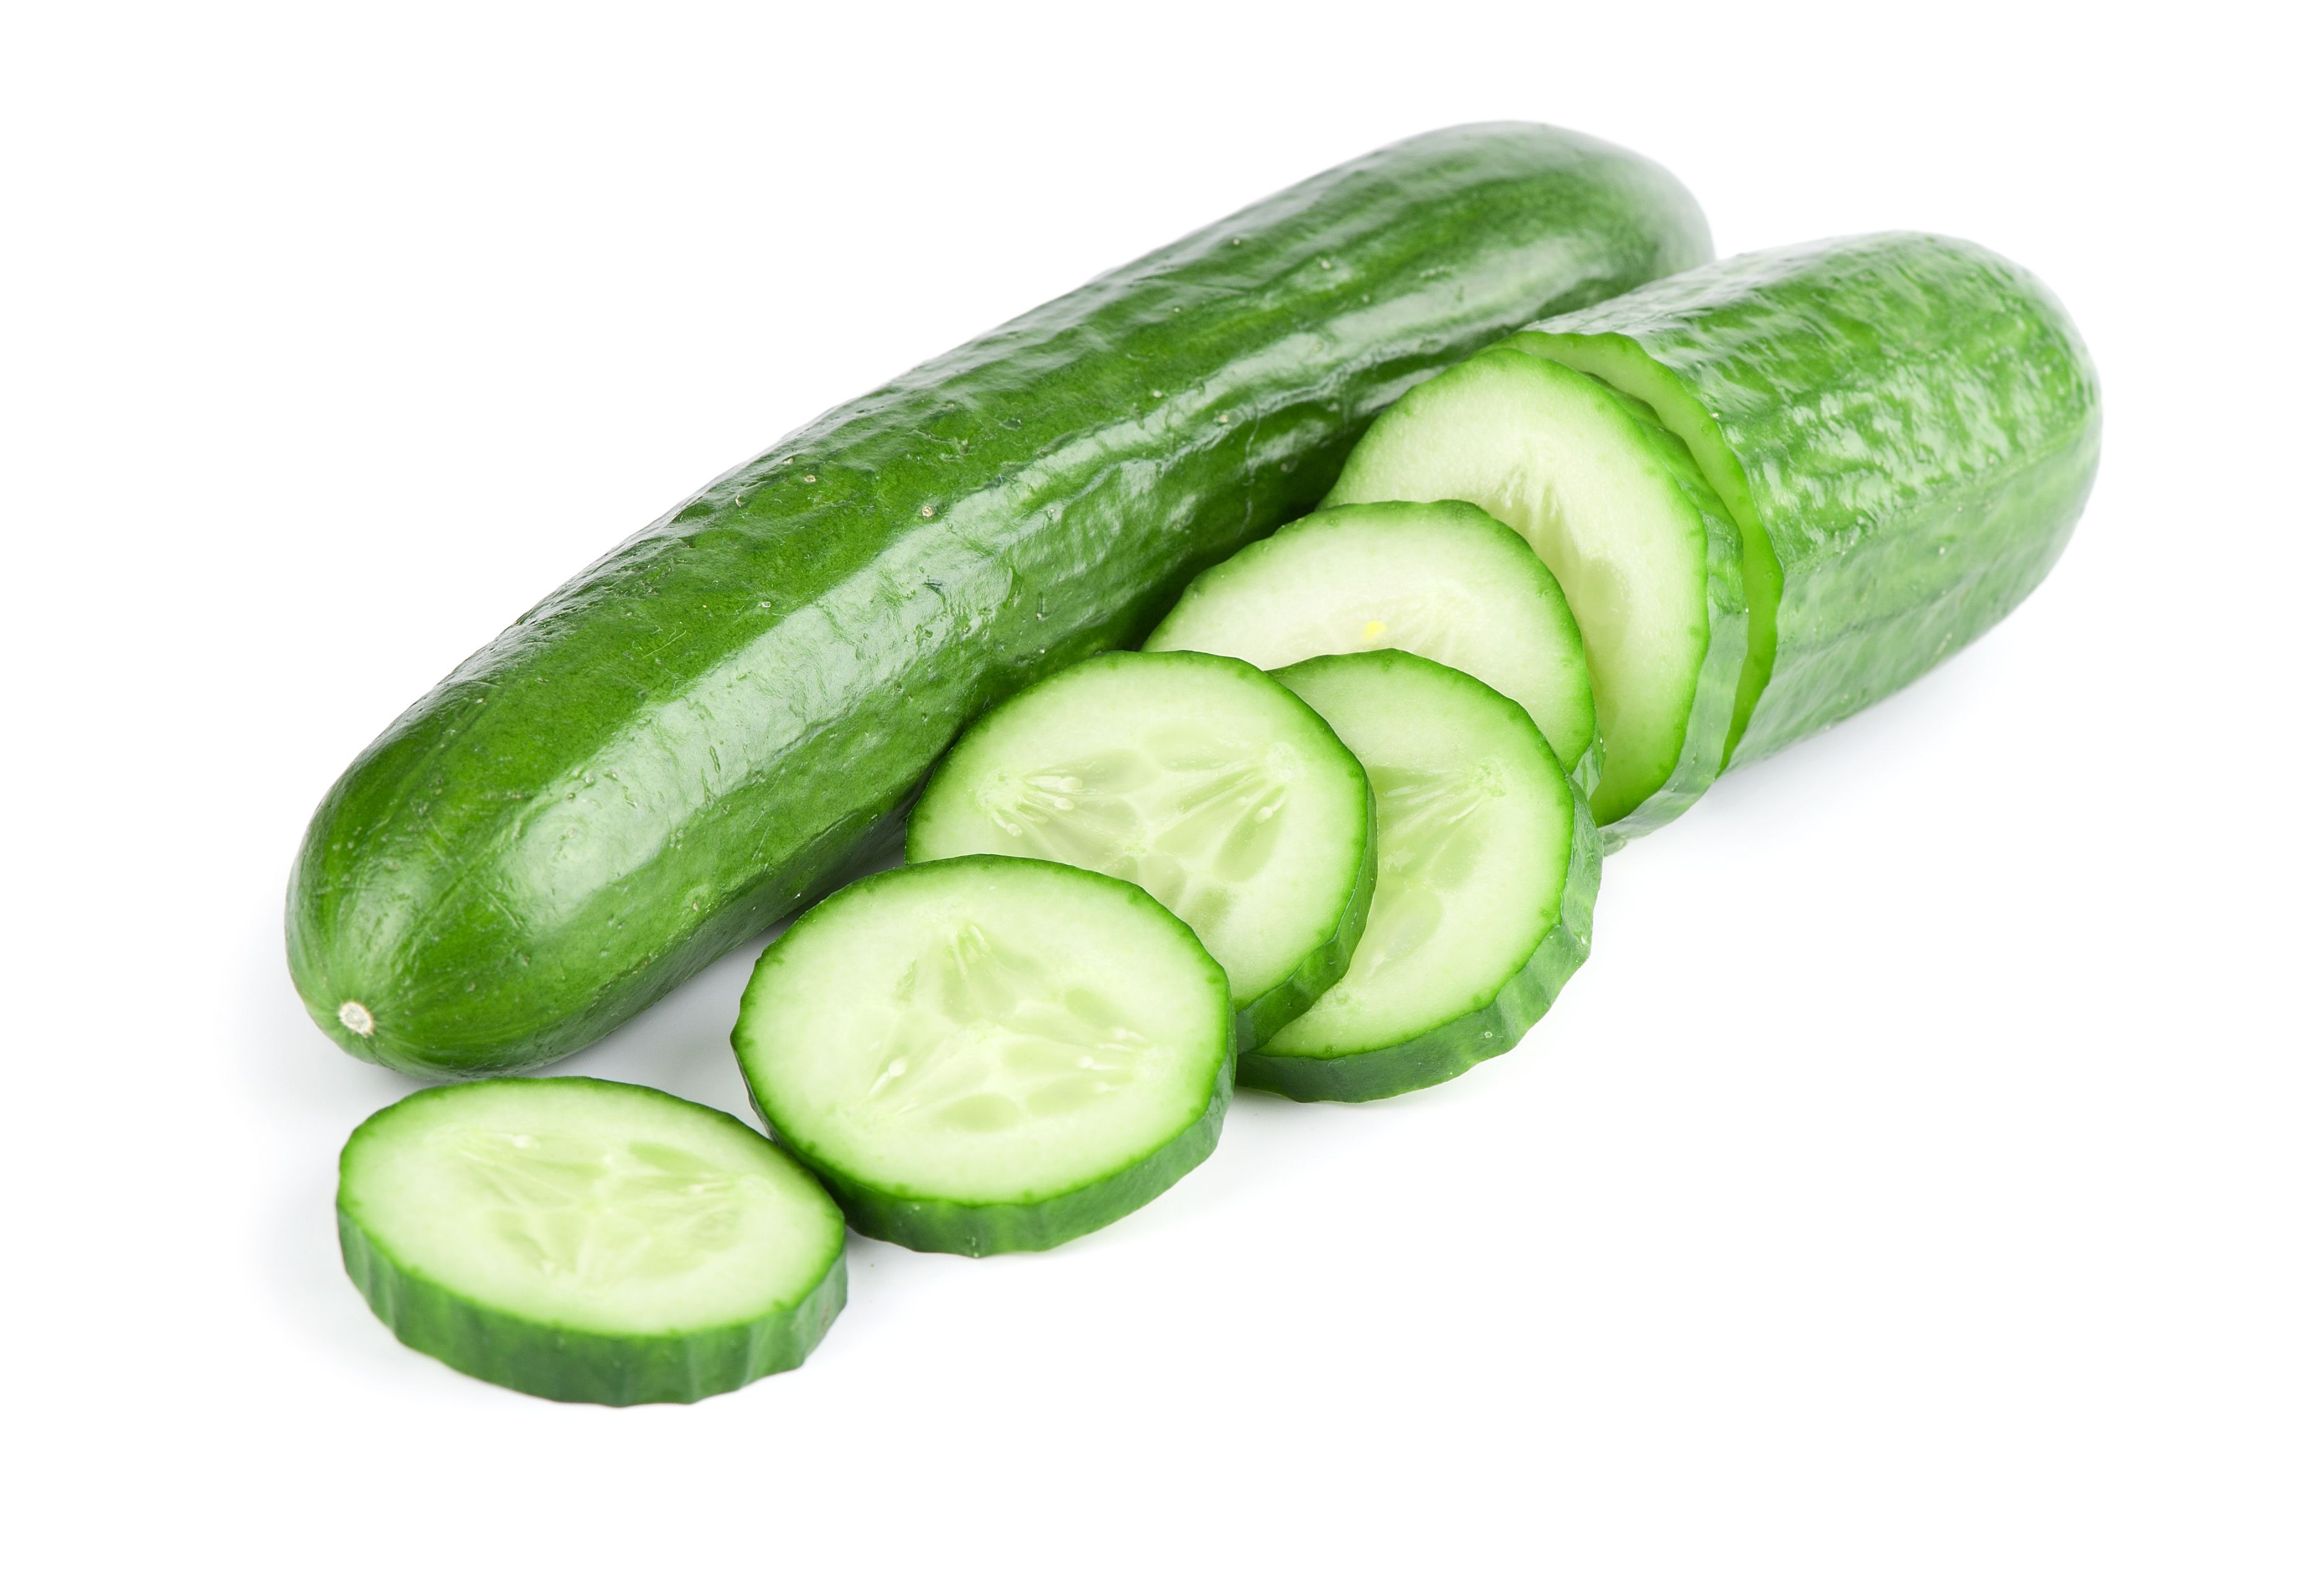 Cucumbers are loaded with the mineral silica, which is an essential component for healthy connective tissue (muscles, ligaments, cartilage, bone, & skin). They are also full of ionic potassium, magnesium, and vitamin C, which gives them a powerful alkalizing effect within the body. Additionally, cucumbers are particularly rich in fluids that hydrate the skin, joints, and tissues.